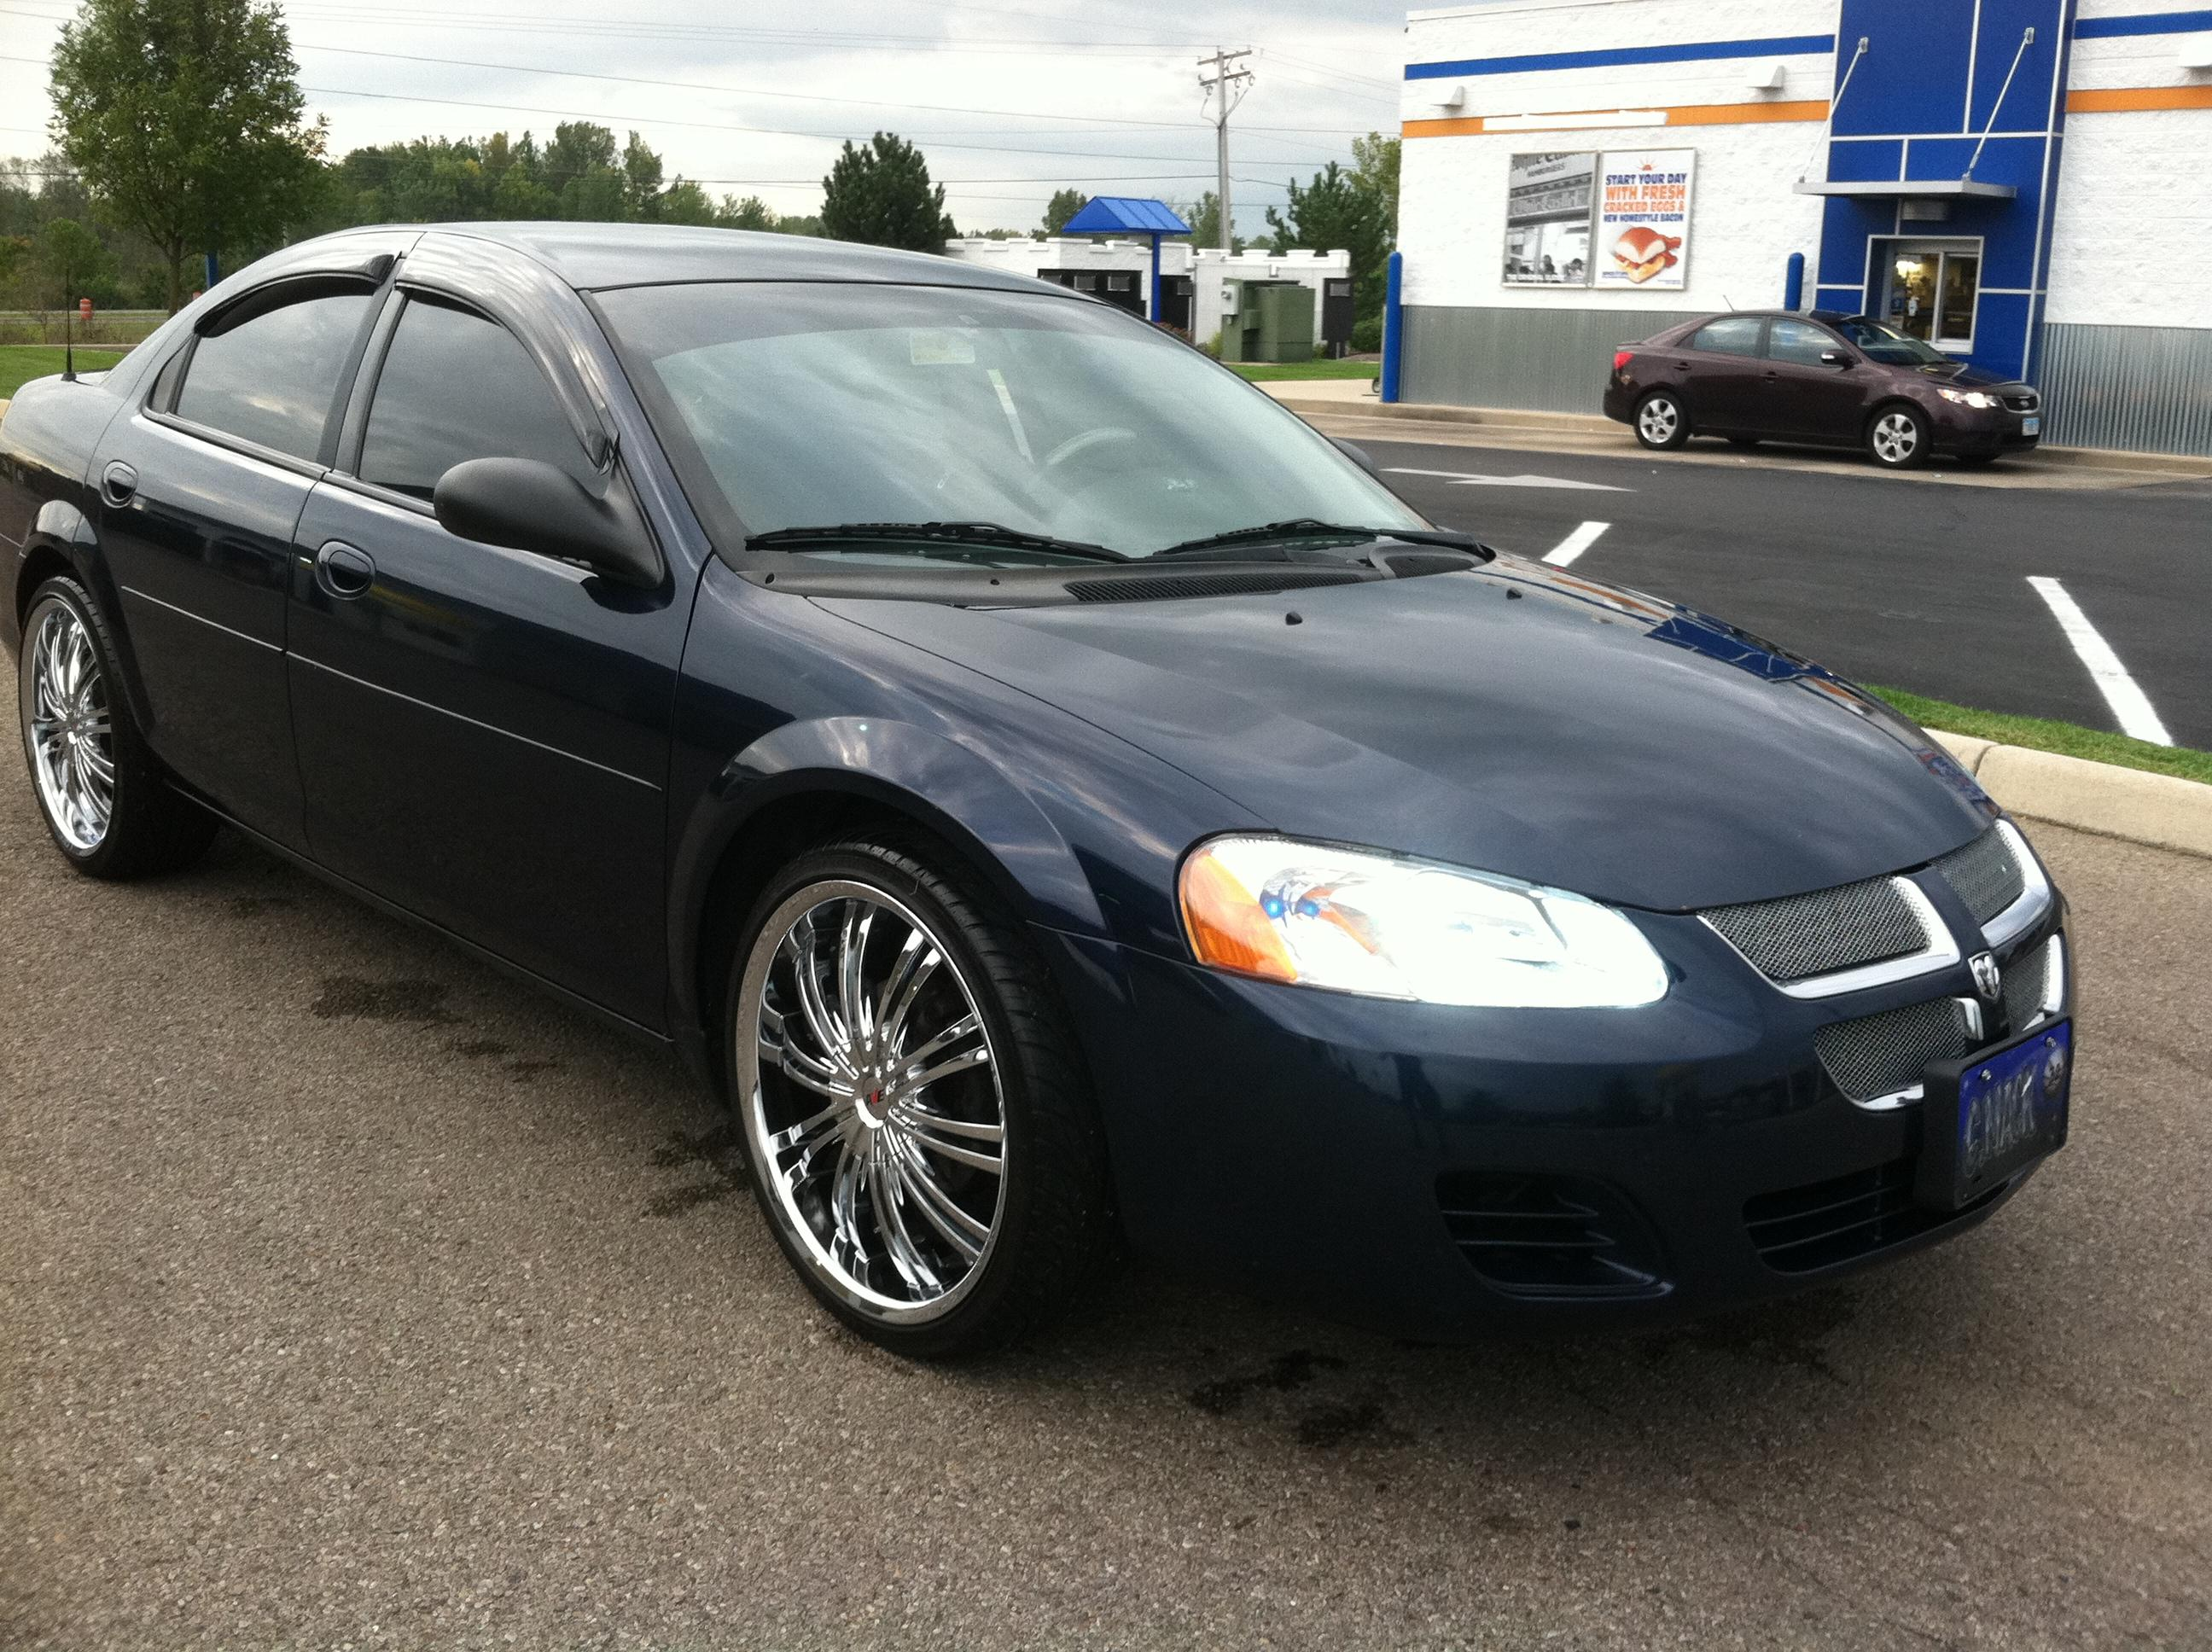 dodge 2005 dodge stratus 2005 dodge stratus image 23. Cars Review. Best American Auto & Cars Review